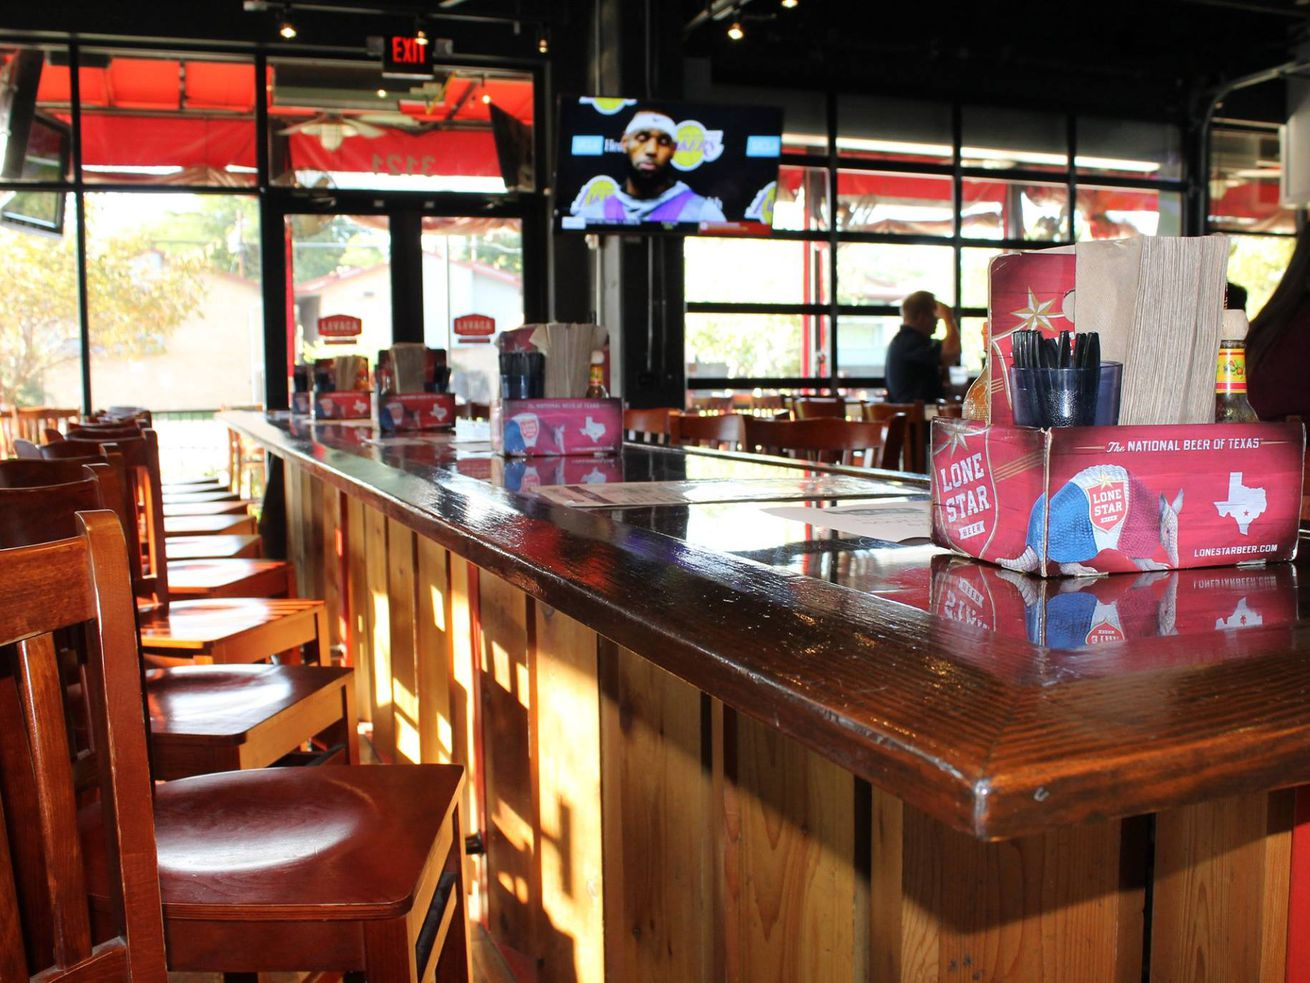 Texas Bars Look to Reclassify as Restaurants in Order to Reopen for Dine-In Services